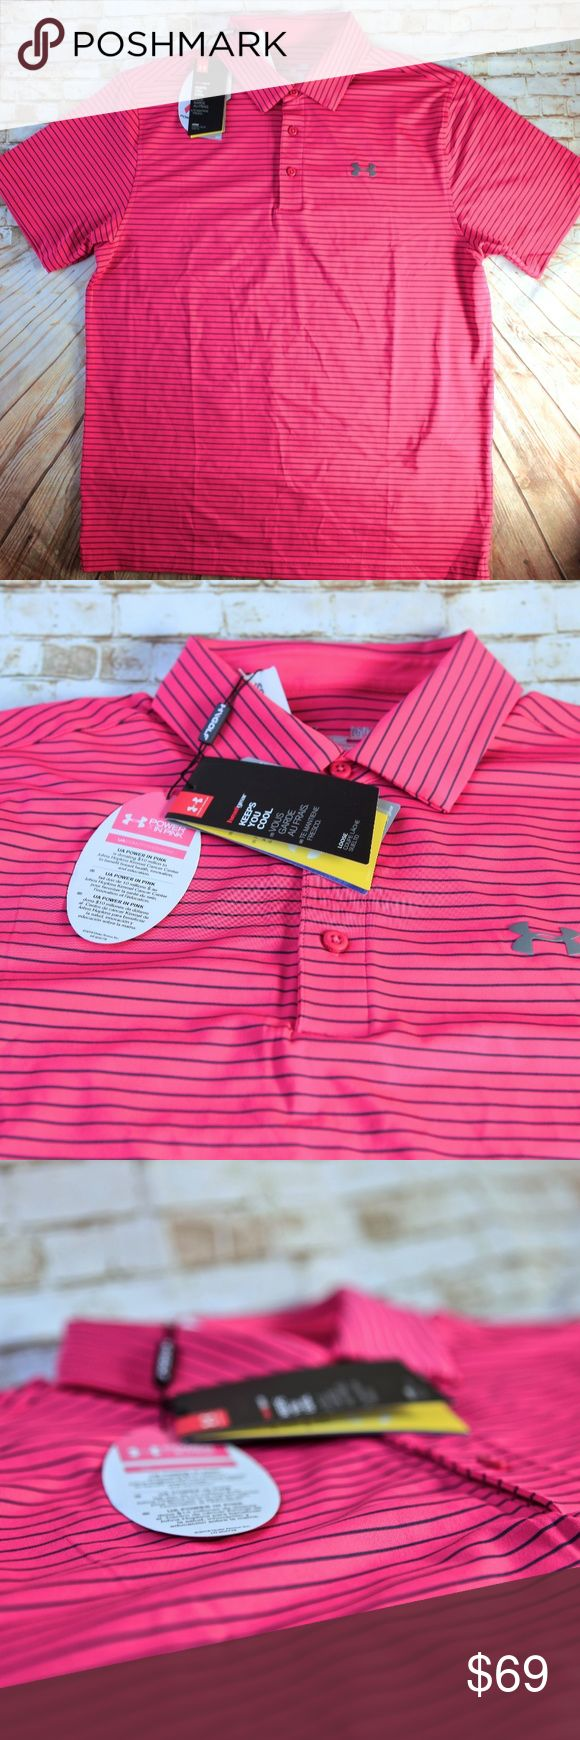 UNDER ARMOUR POWER IN PINK BREAST CANCER GOLF POLO UNDER ARMOUR POWER IN PINK BREAST CANCER GOLF POLO SHIRT SIZE L BRAND NWT UPF30 Under Armour Shirts Polos